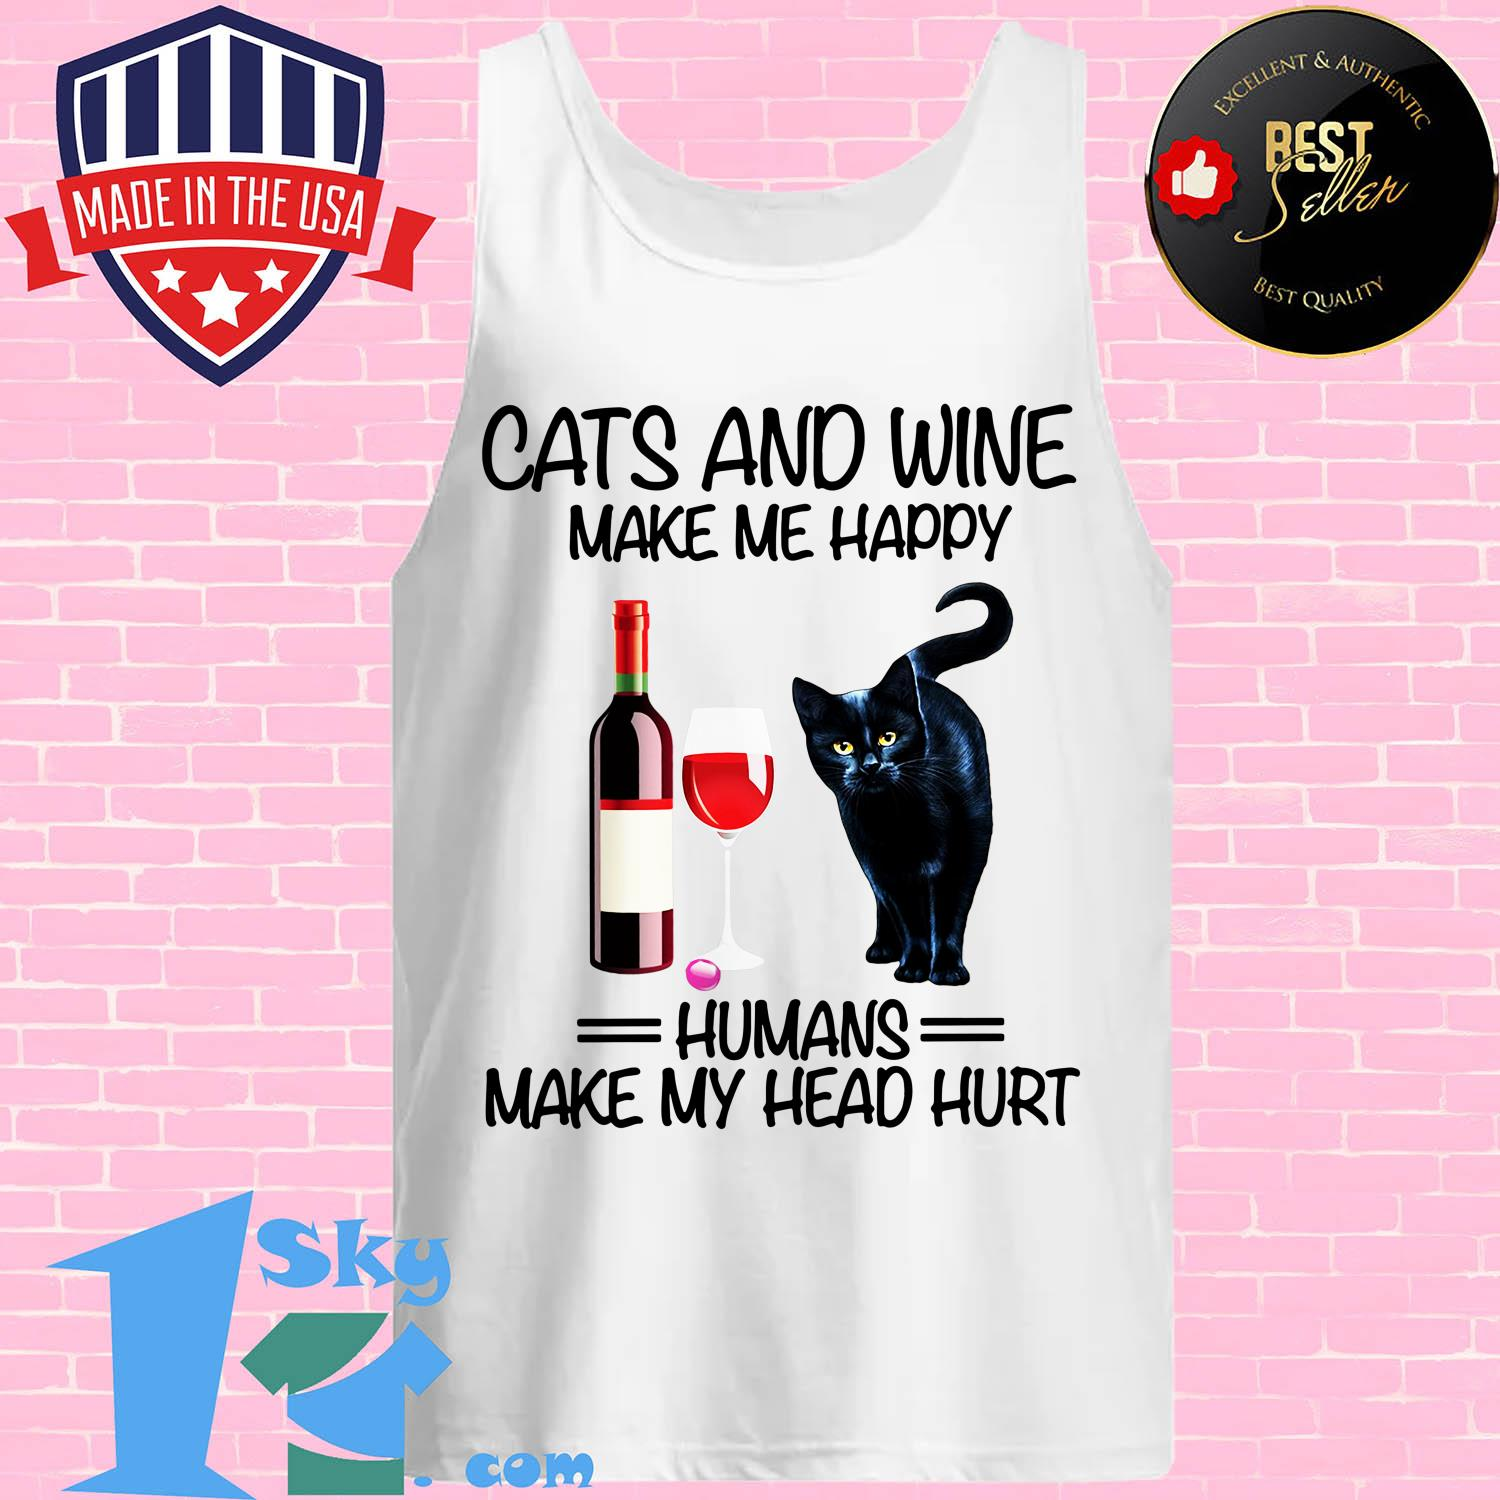 cats and wine make me happy humans make my head hurt tank top - Cats and wine make me happy humans make my head hurt shirt